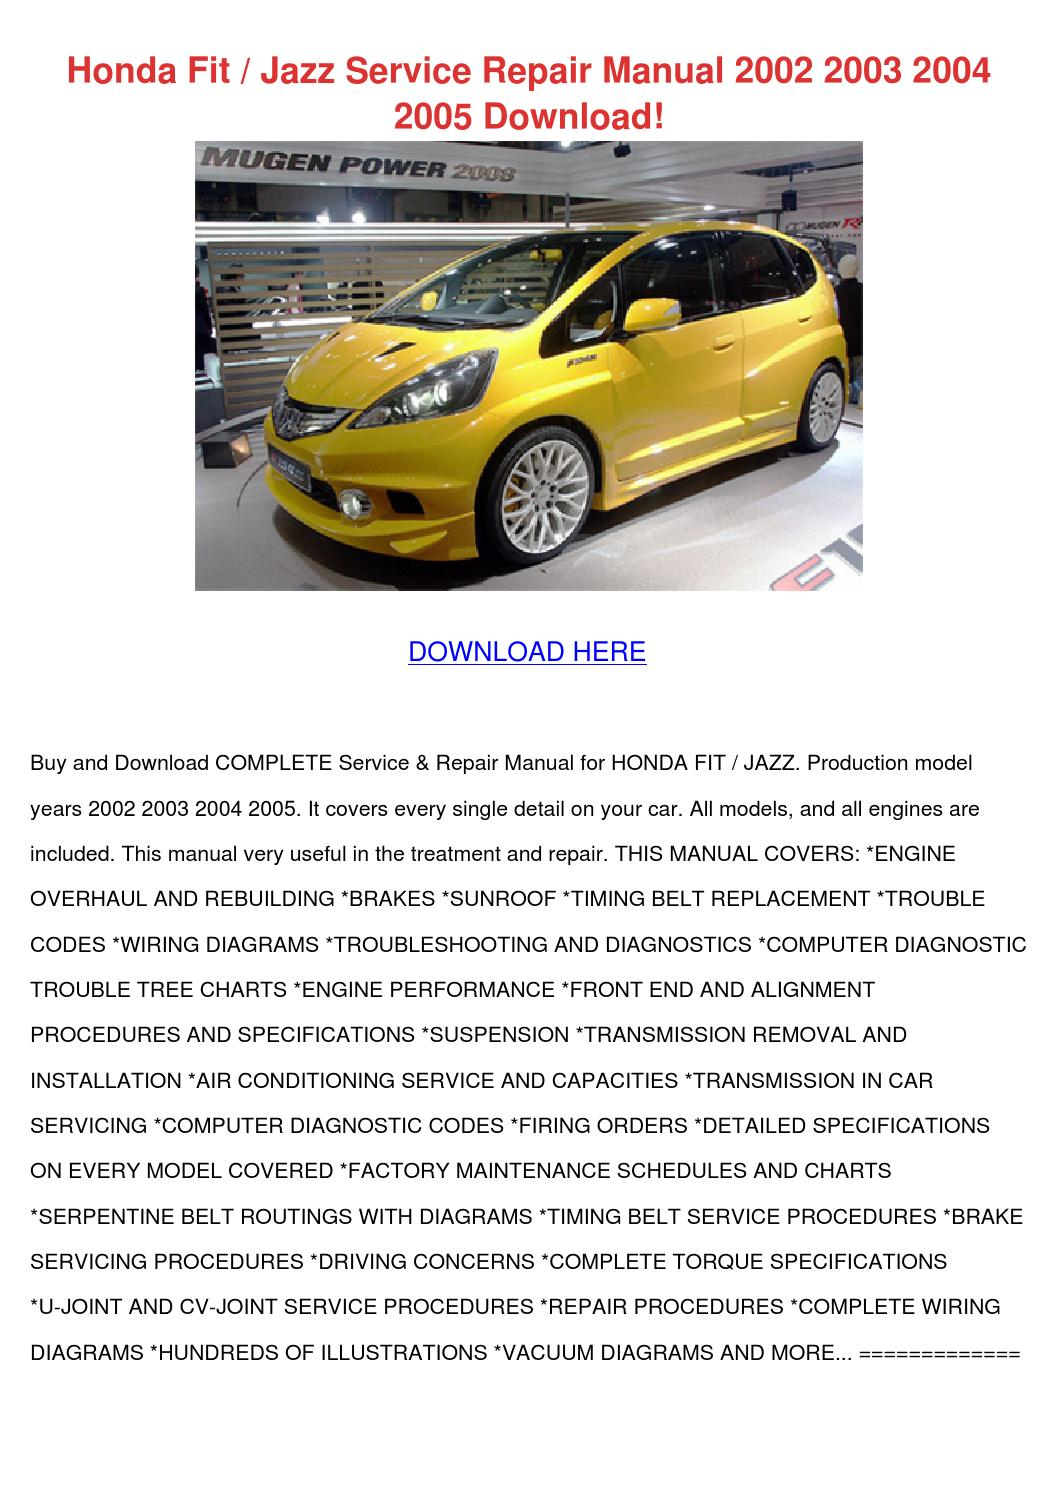 Honda fit jazz service repair manual 2002 2003 2004 2005 download by daniel  - issuu